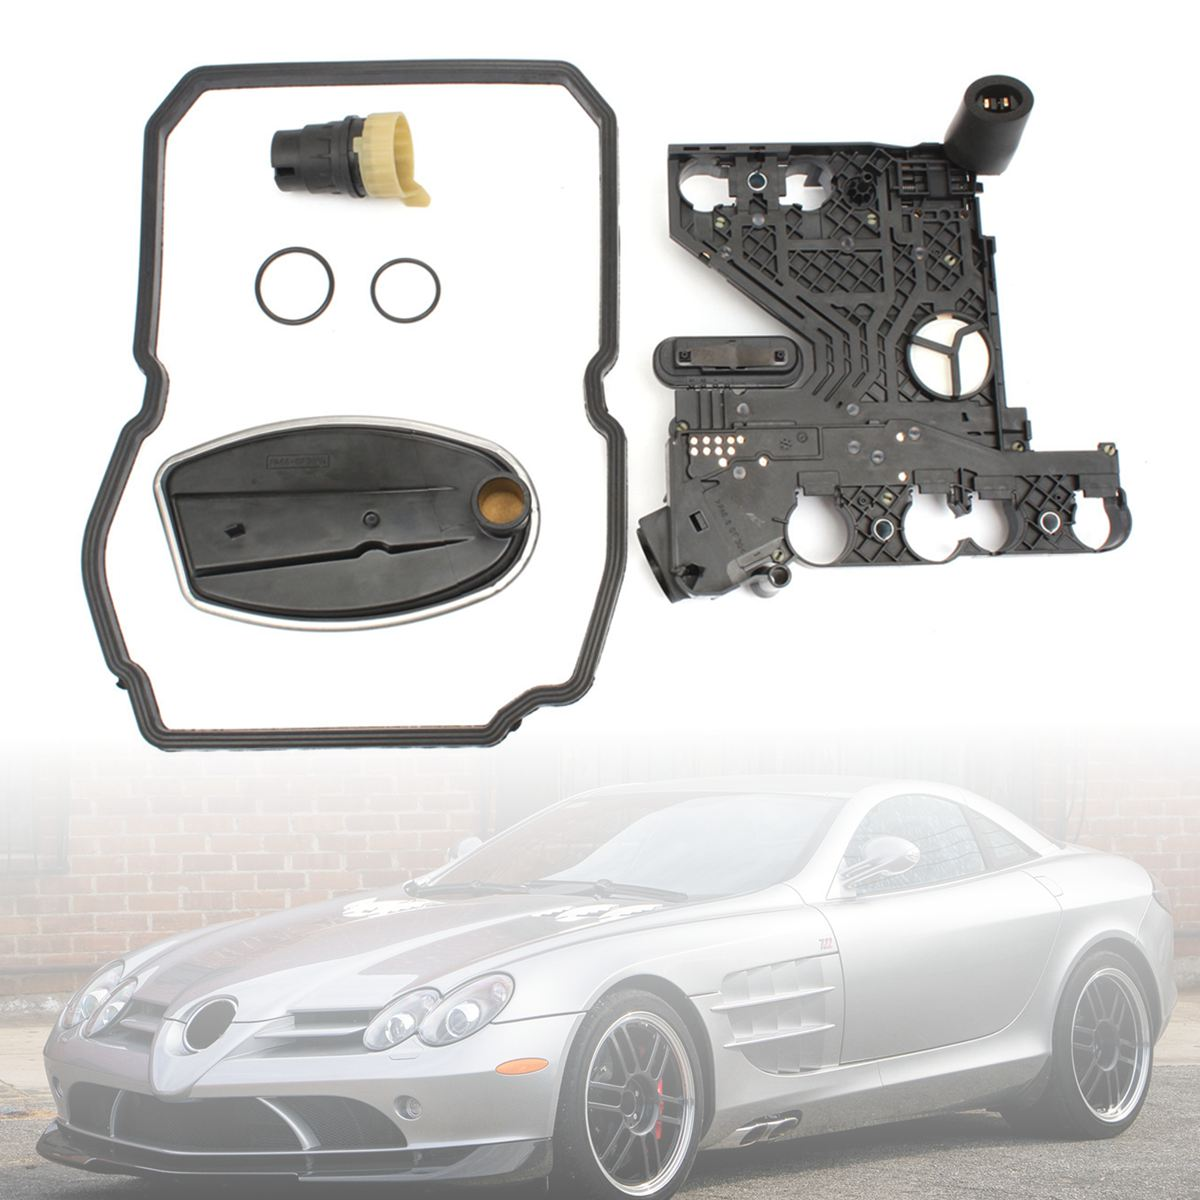 722.6 Gearbox Transmission Conductor Plate Connector Filter Gasket Kit Set For Benz CLK ML SL 1402770095